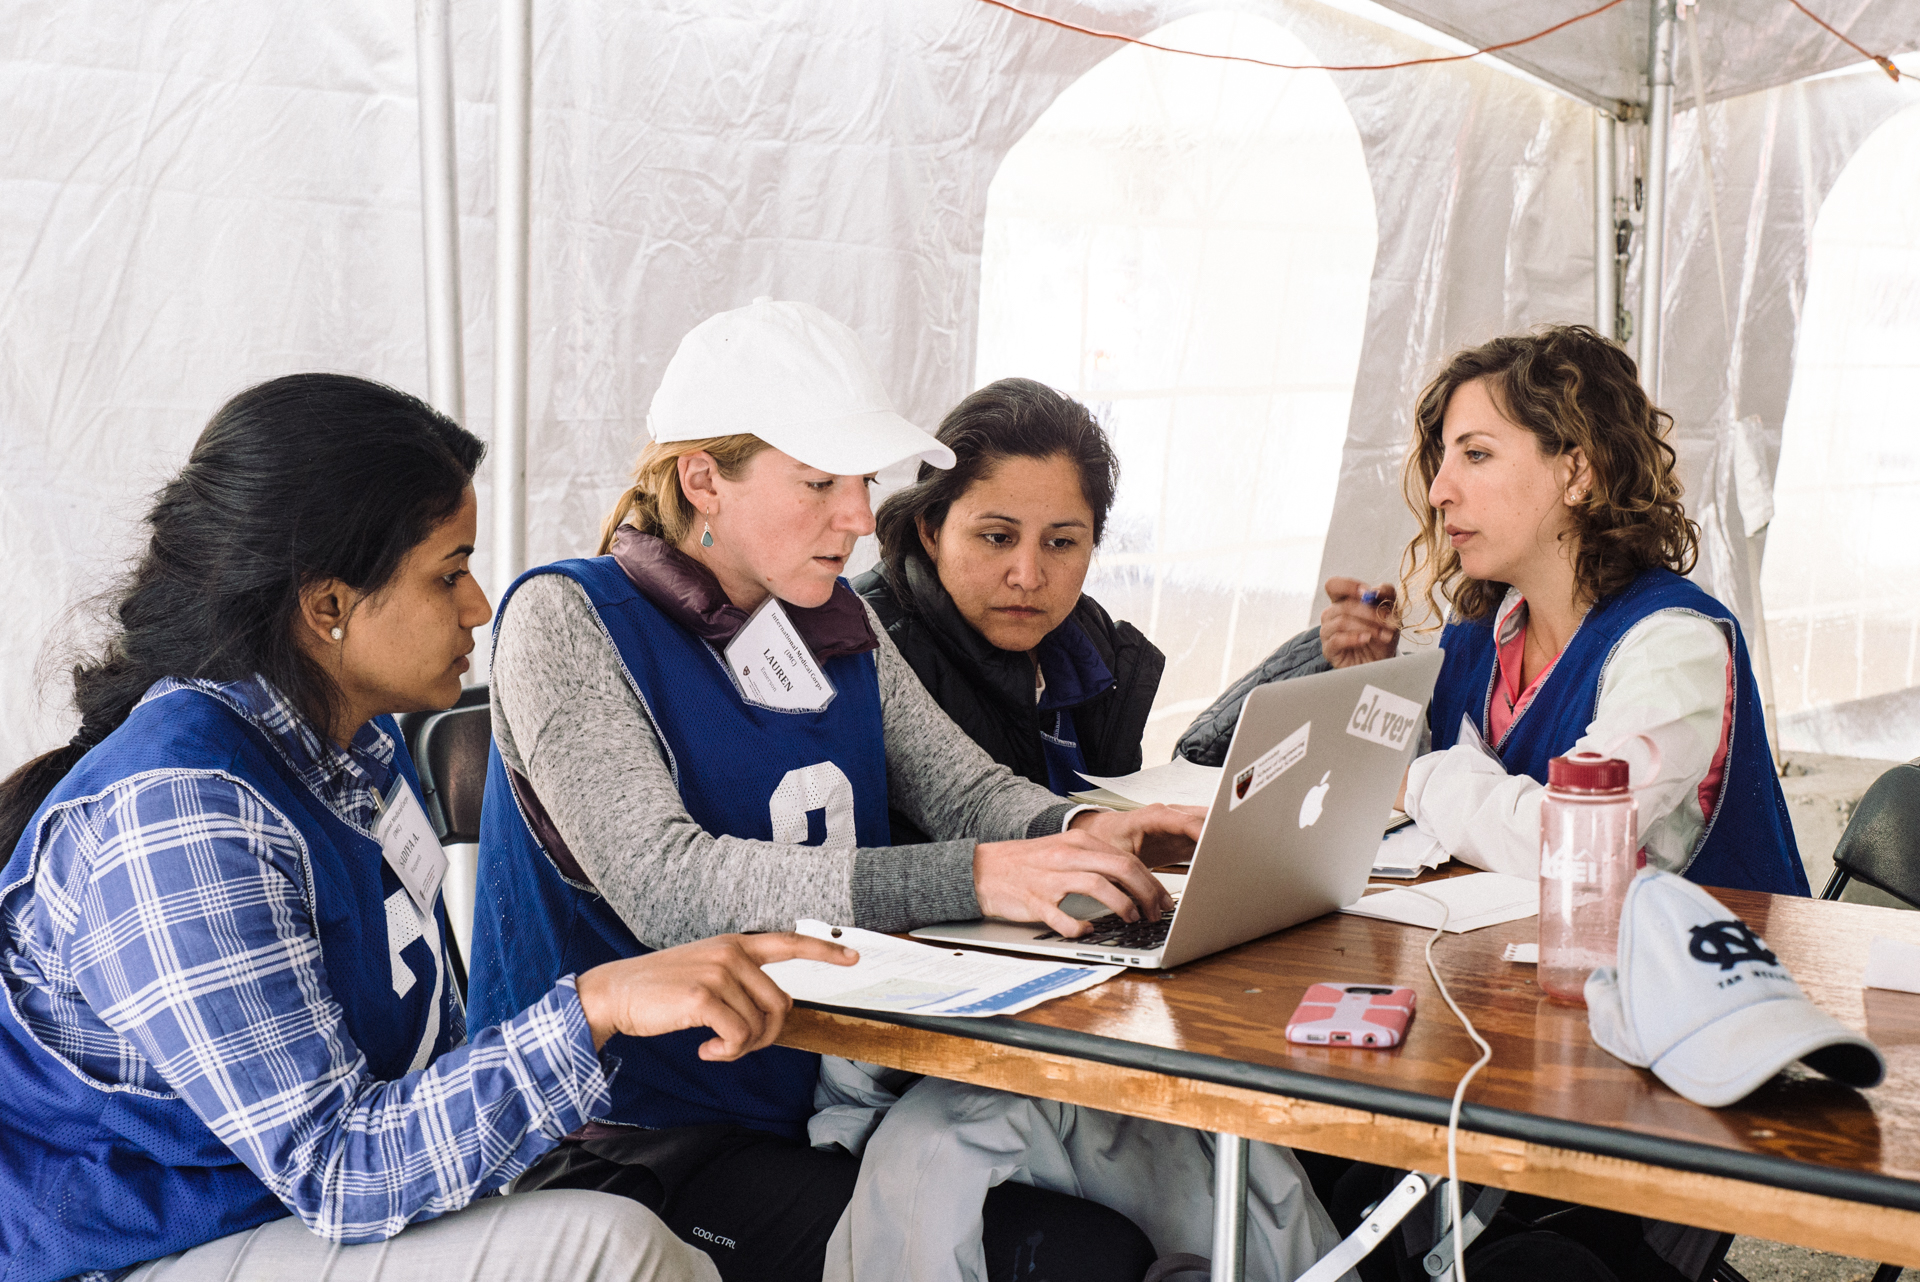 Students participate in annual Harvard Humanitarian Initiative Simulation Exercise